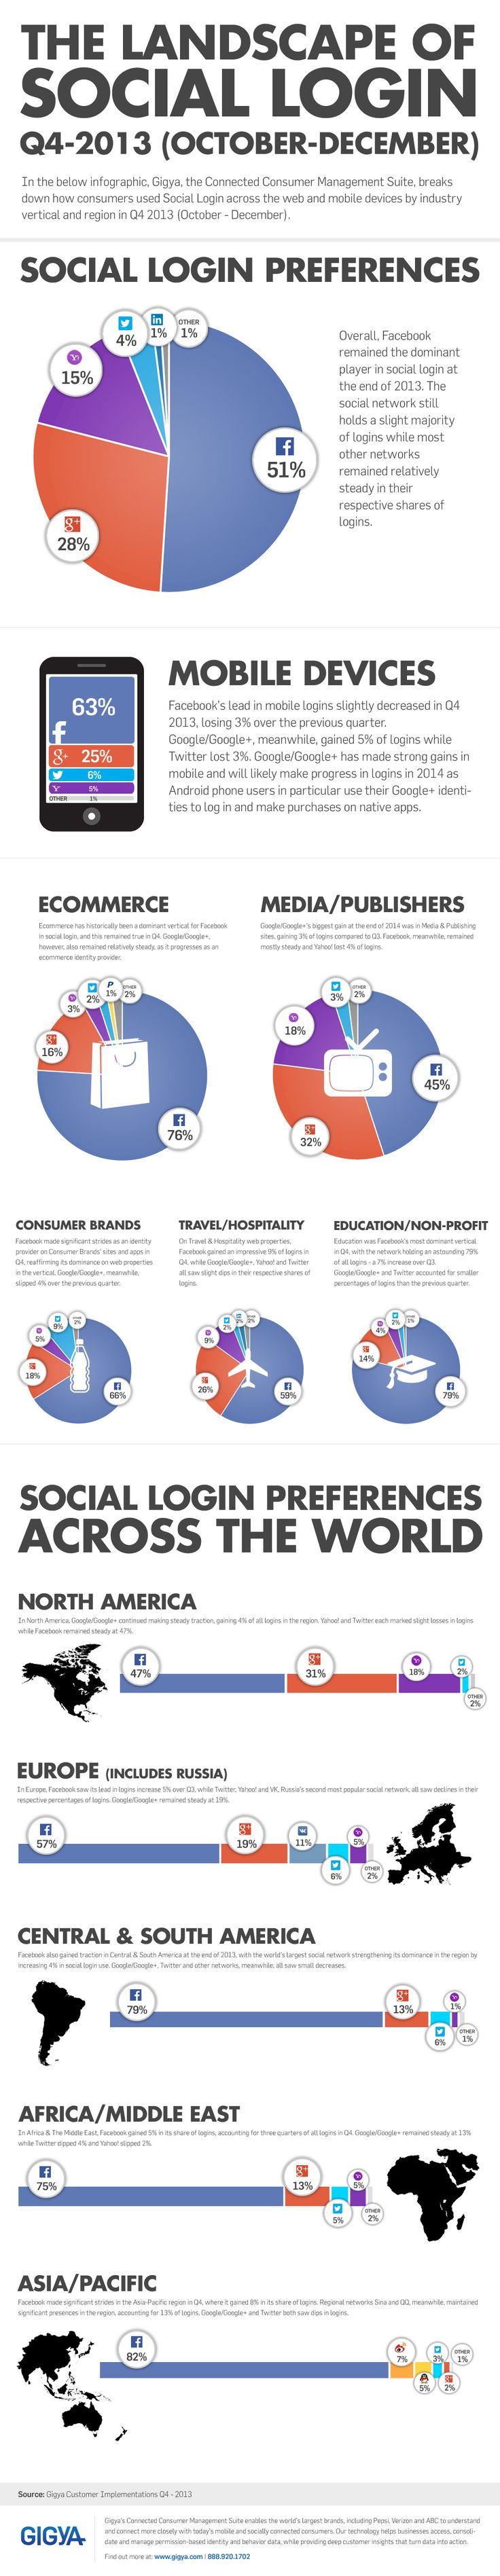 The landscape of Social Login Q4 2013